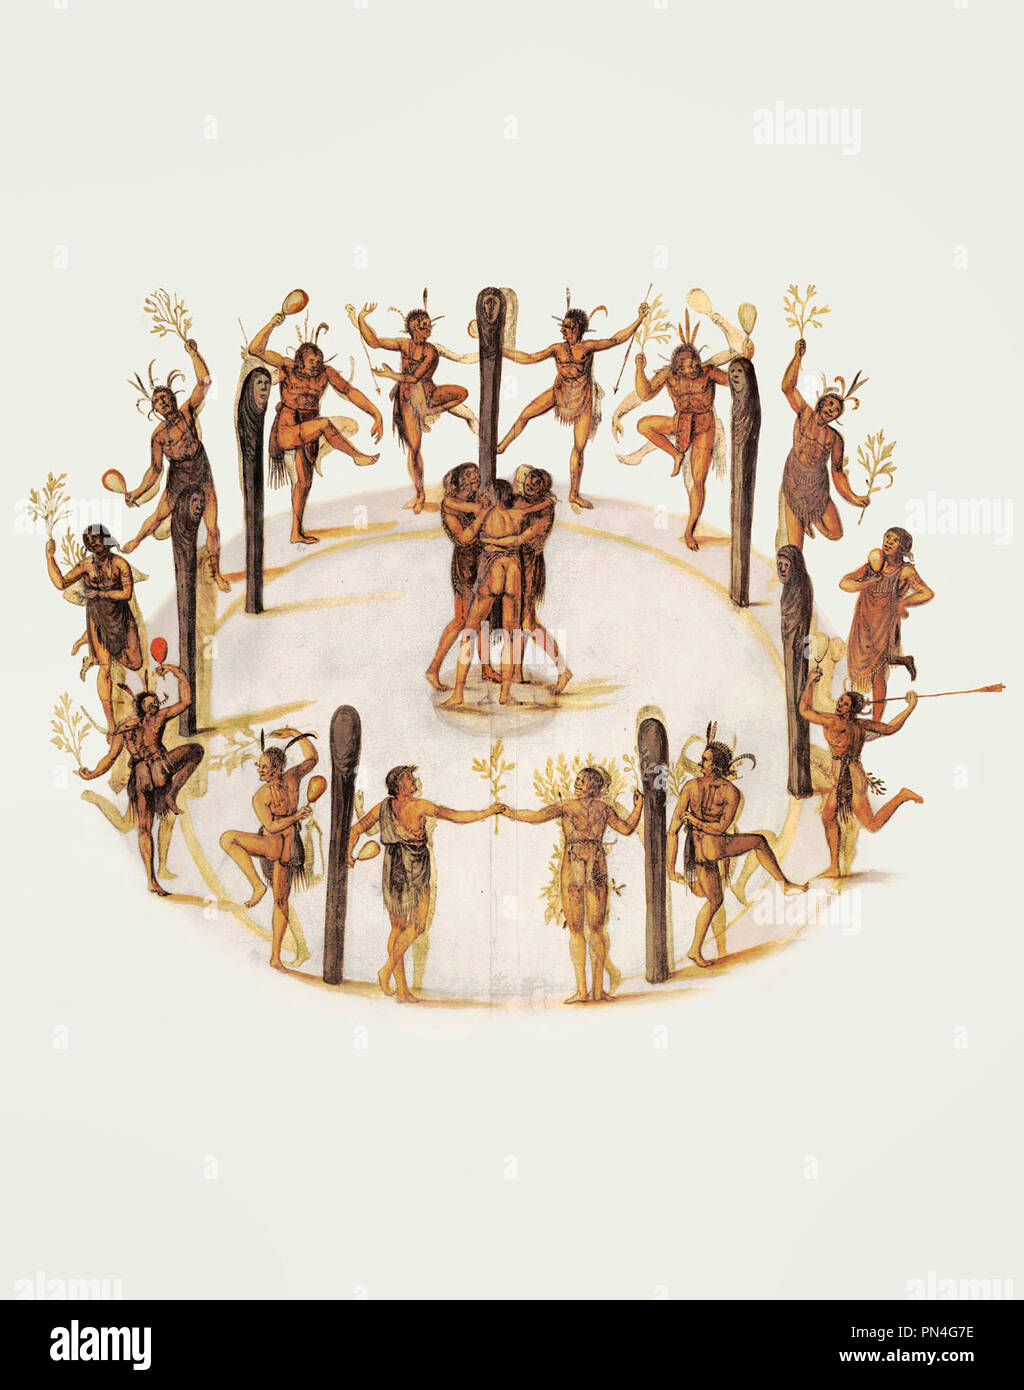 Dancing Secotan Indians in North Carolina. Watercolour painted by John White in 1585. - Stock Image